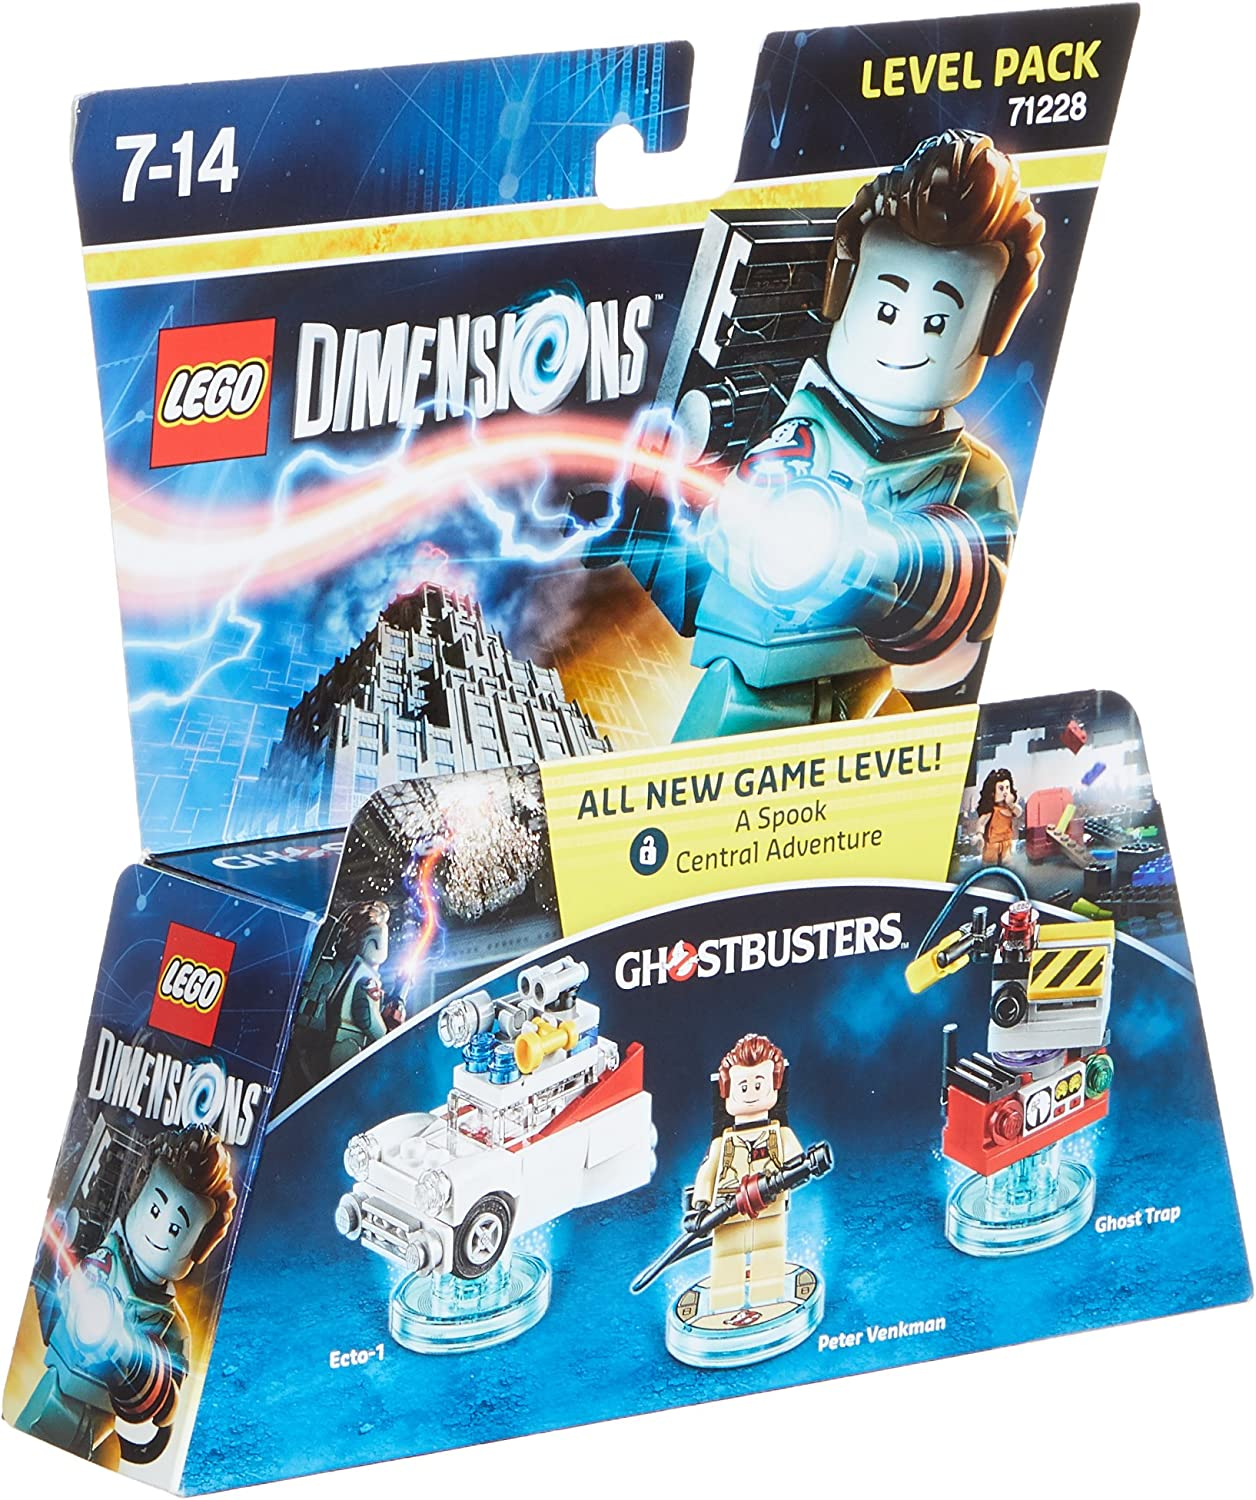 Warner Bros Interactive Spain Lego Dimensions - Los Cazafantasmas, Peter Venkman: Amazon.es: Videojuegos